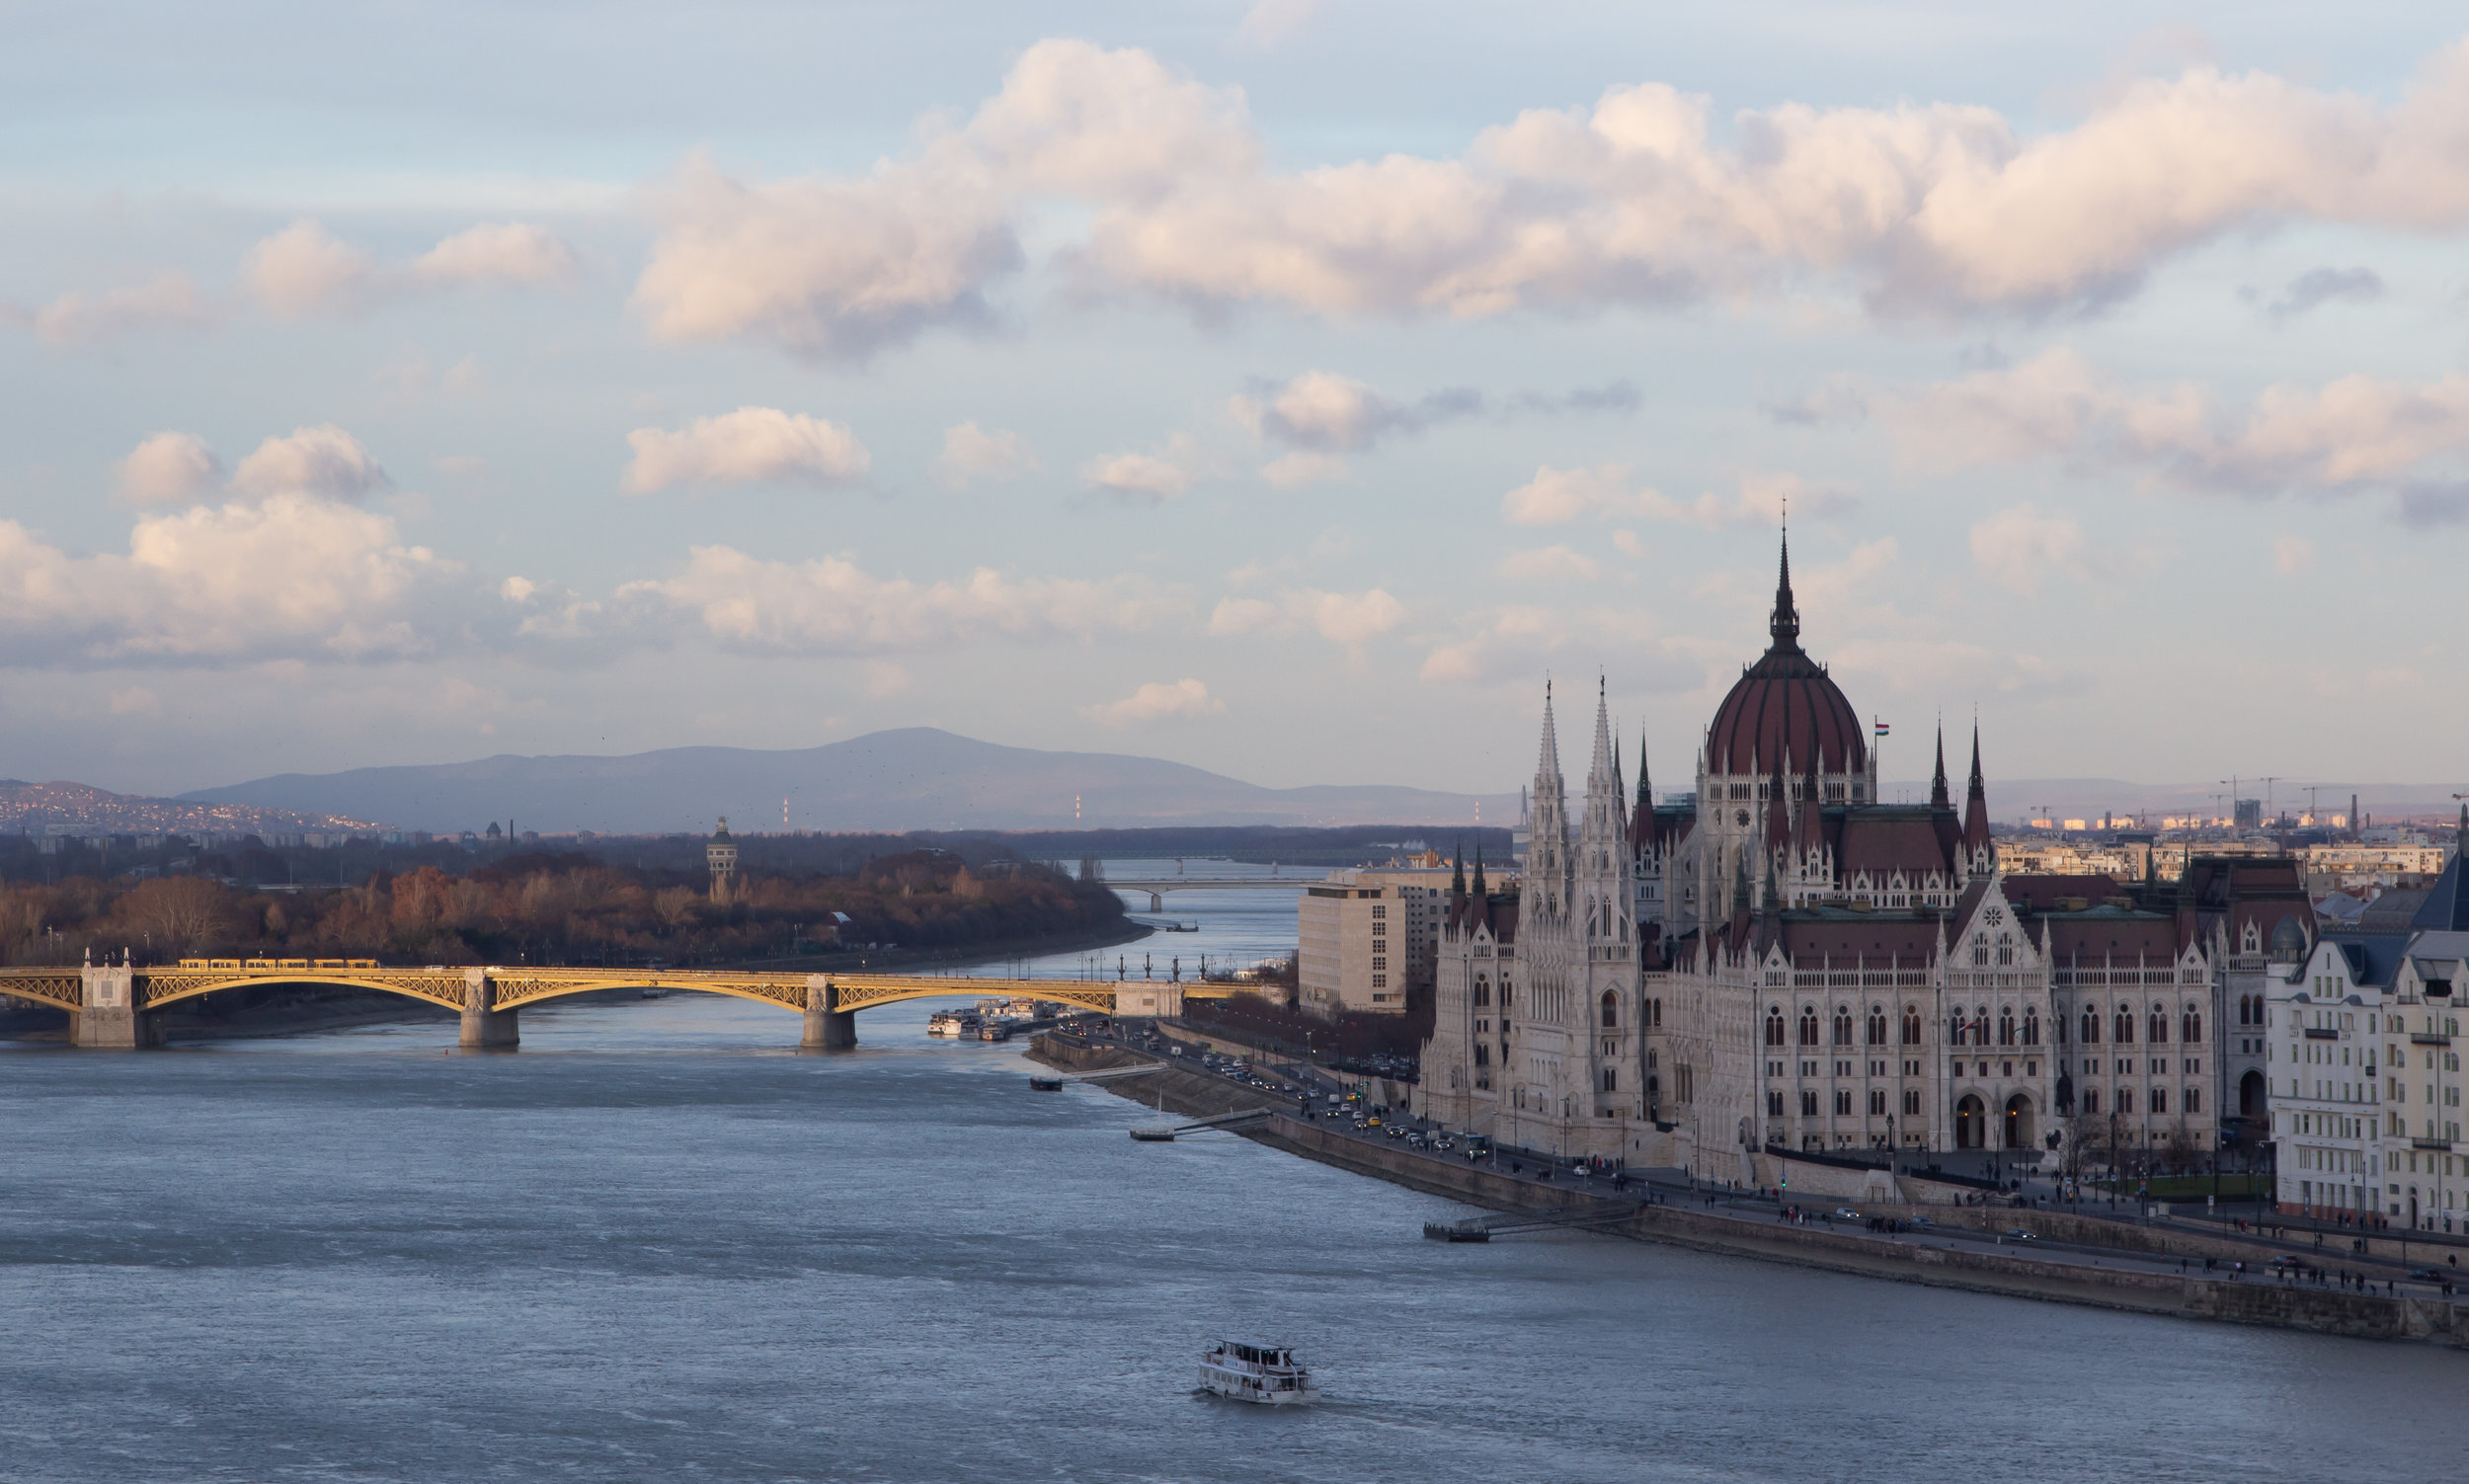 Parliament from across the Danube.